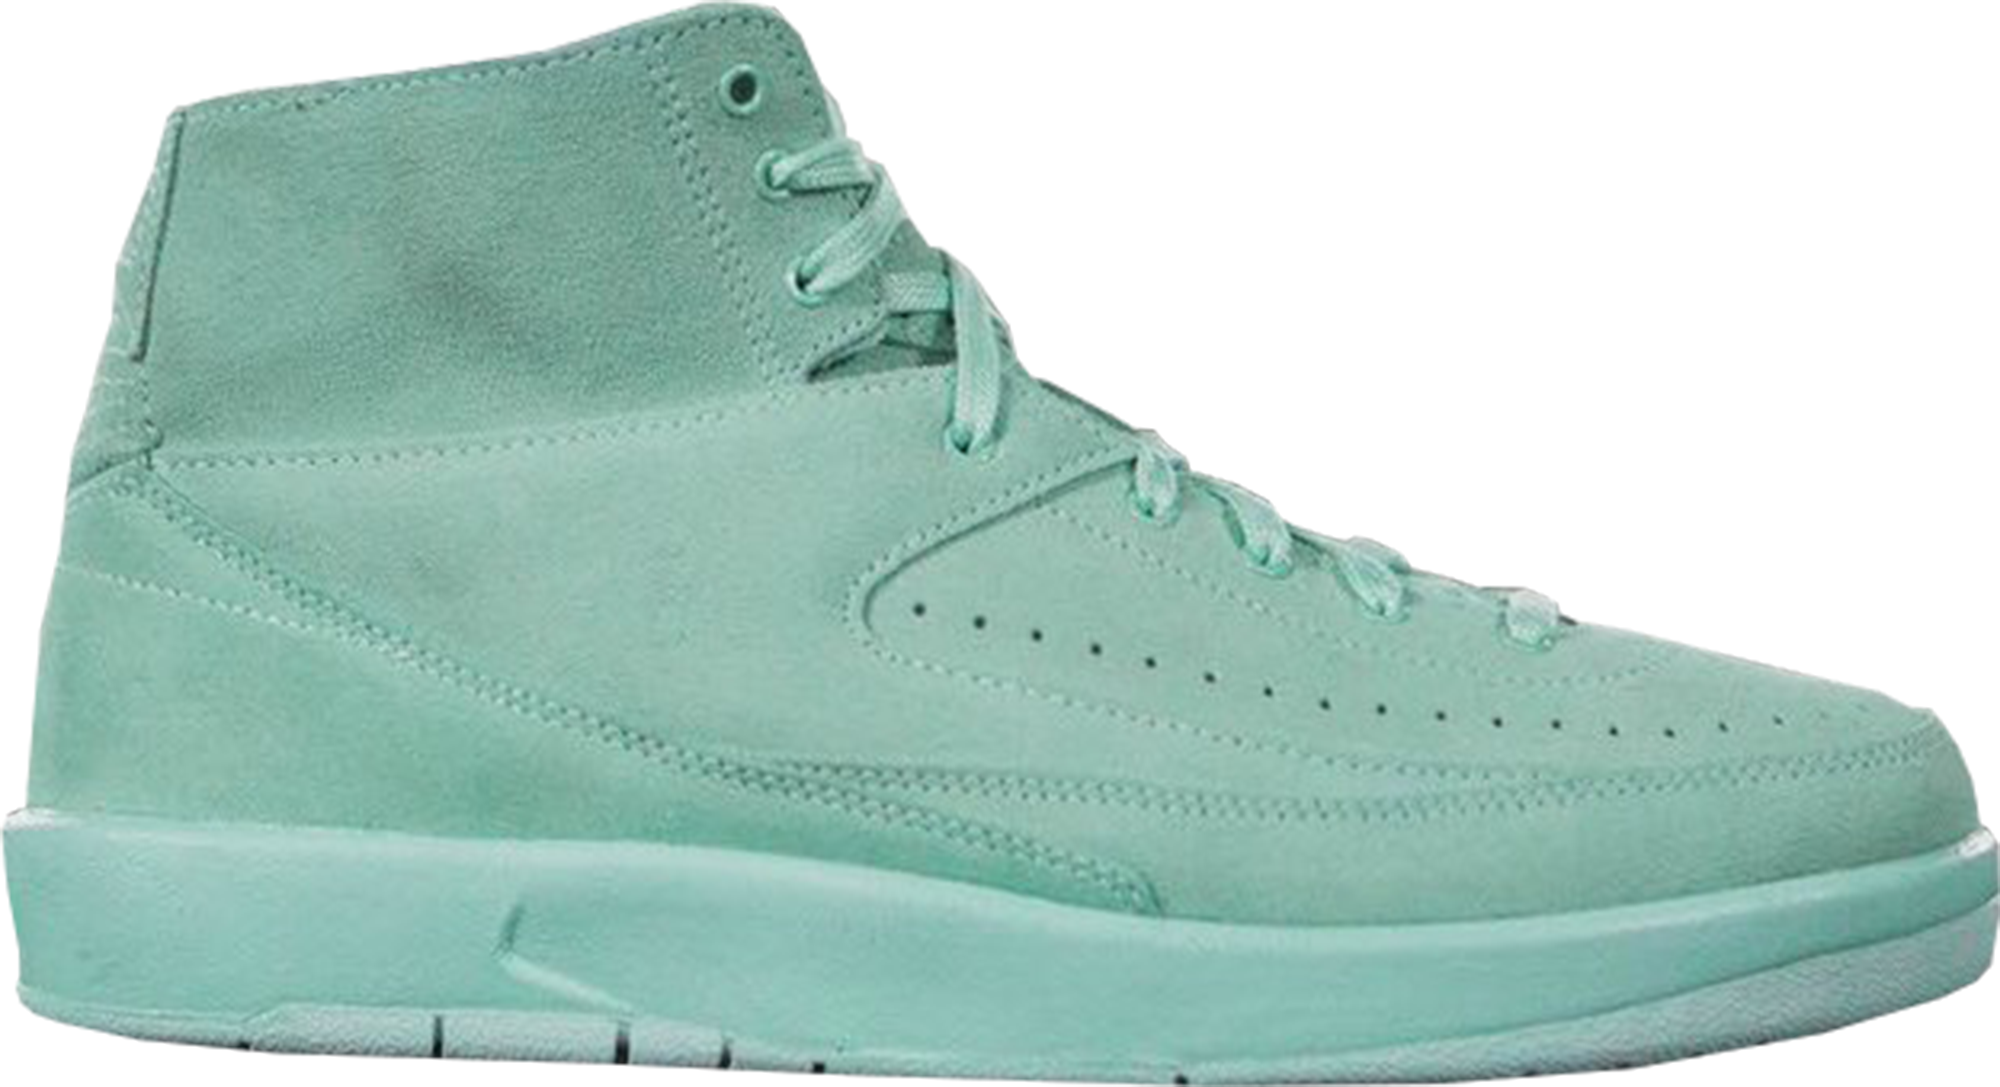 Jordan 2 Retro Decon Mint Foam